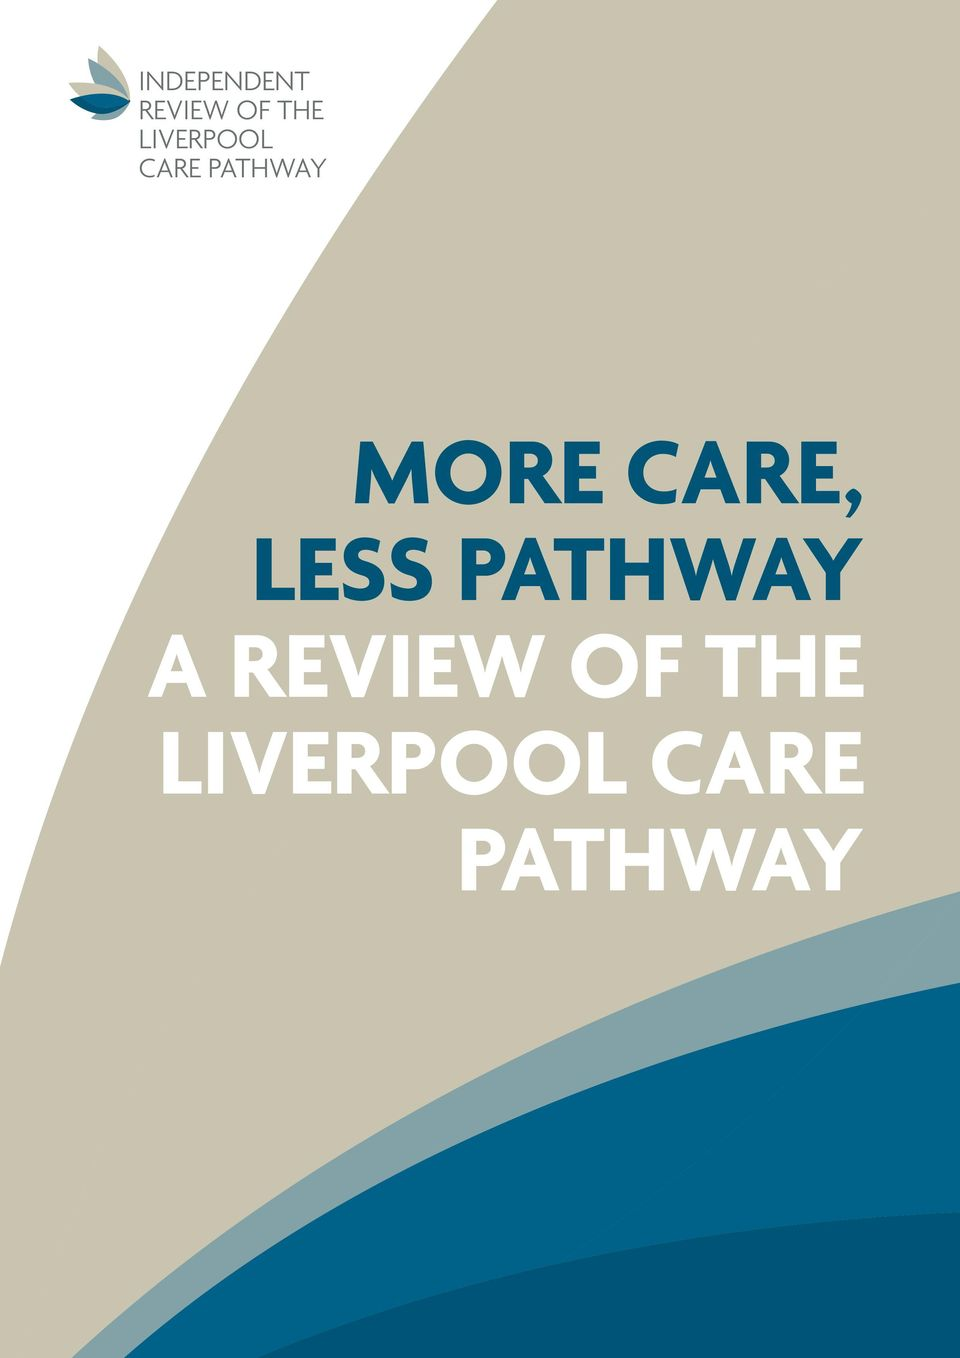 CARE, LESS PATHWAY A REVIEW